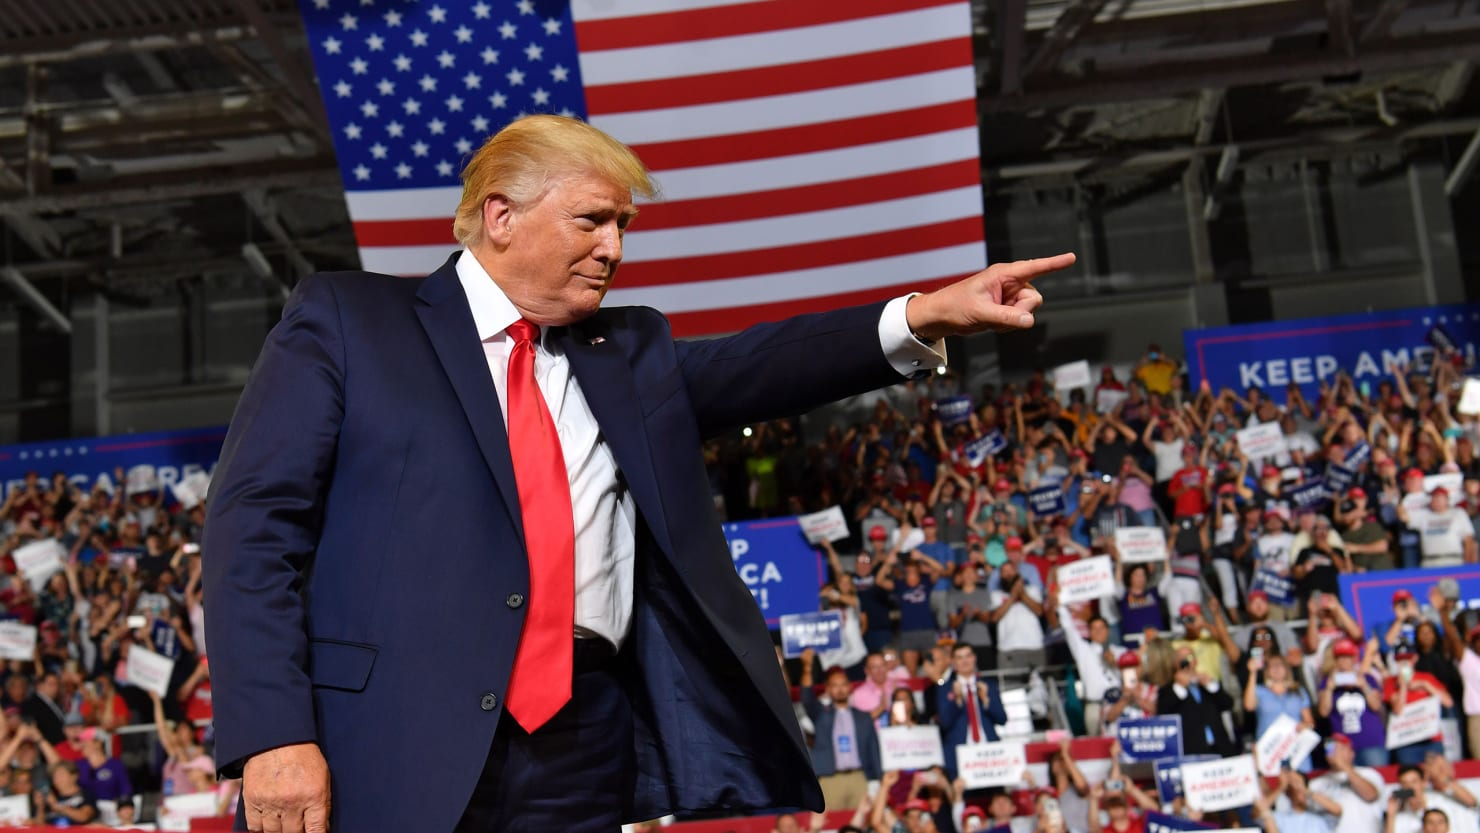 Trump Readies His Mob for the Race War